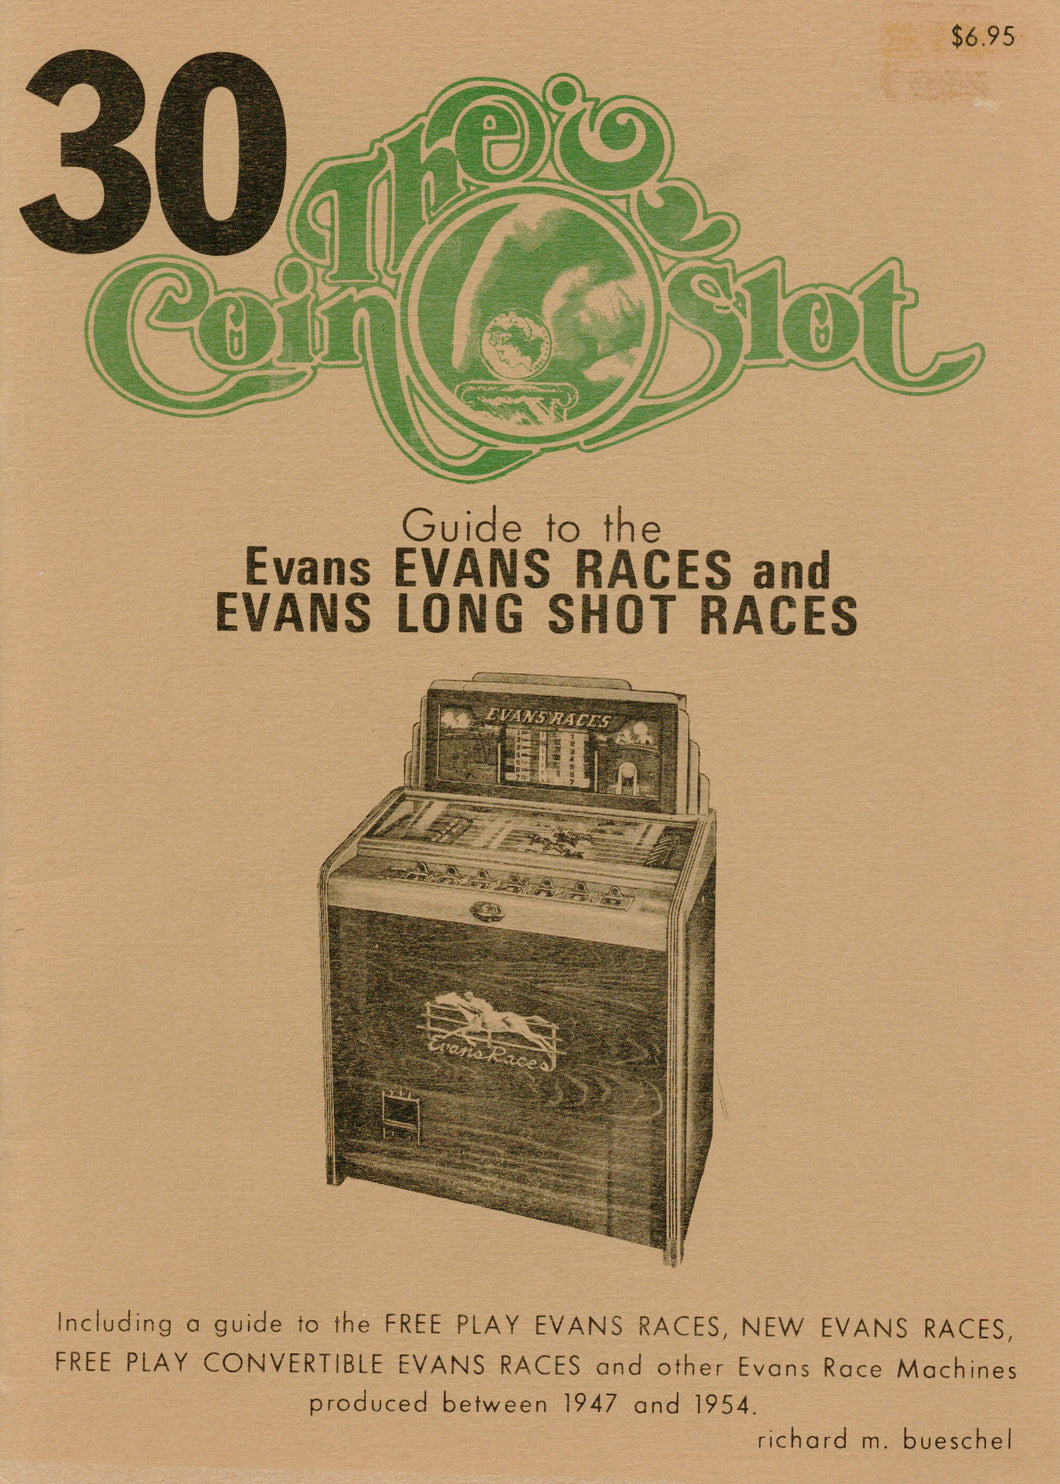 Coin Slot #30. Guide to the Evans Races and Evans Long Shot Races